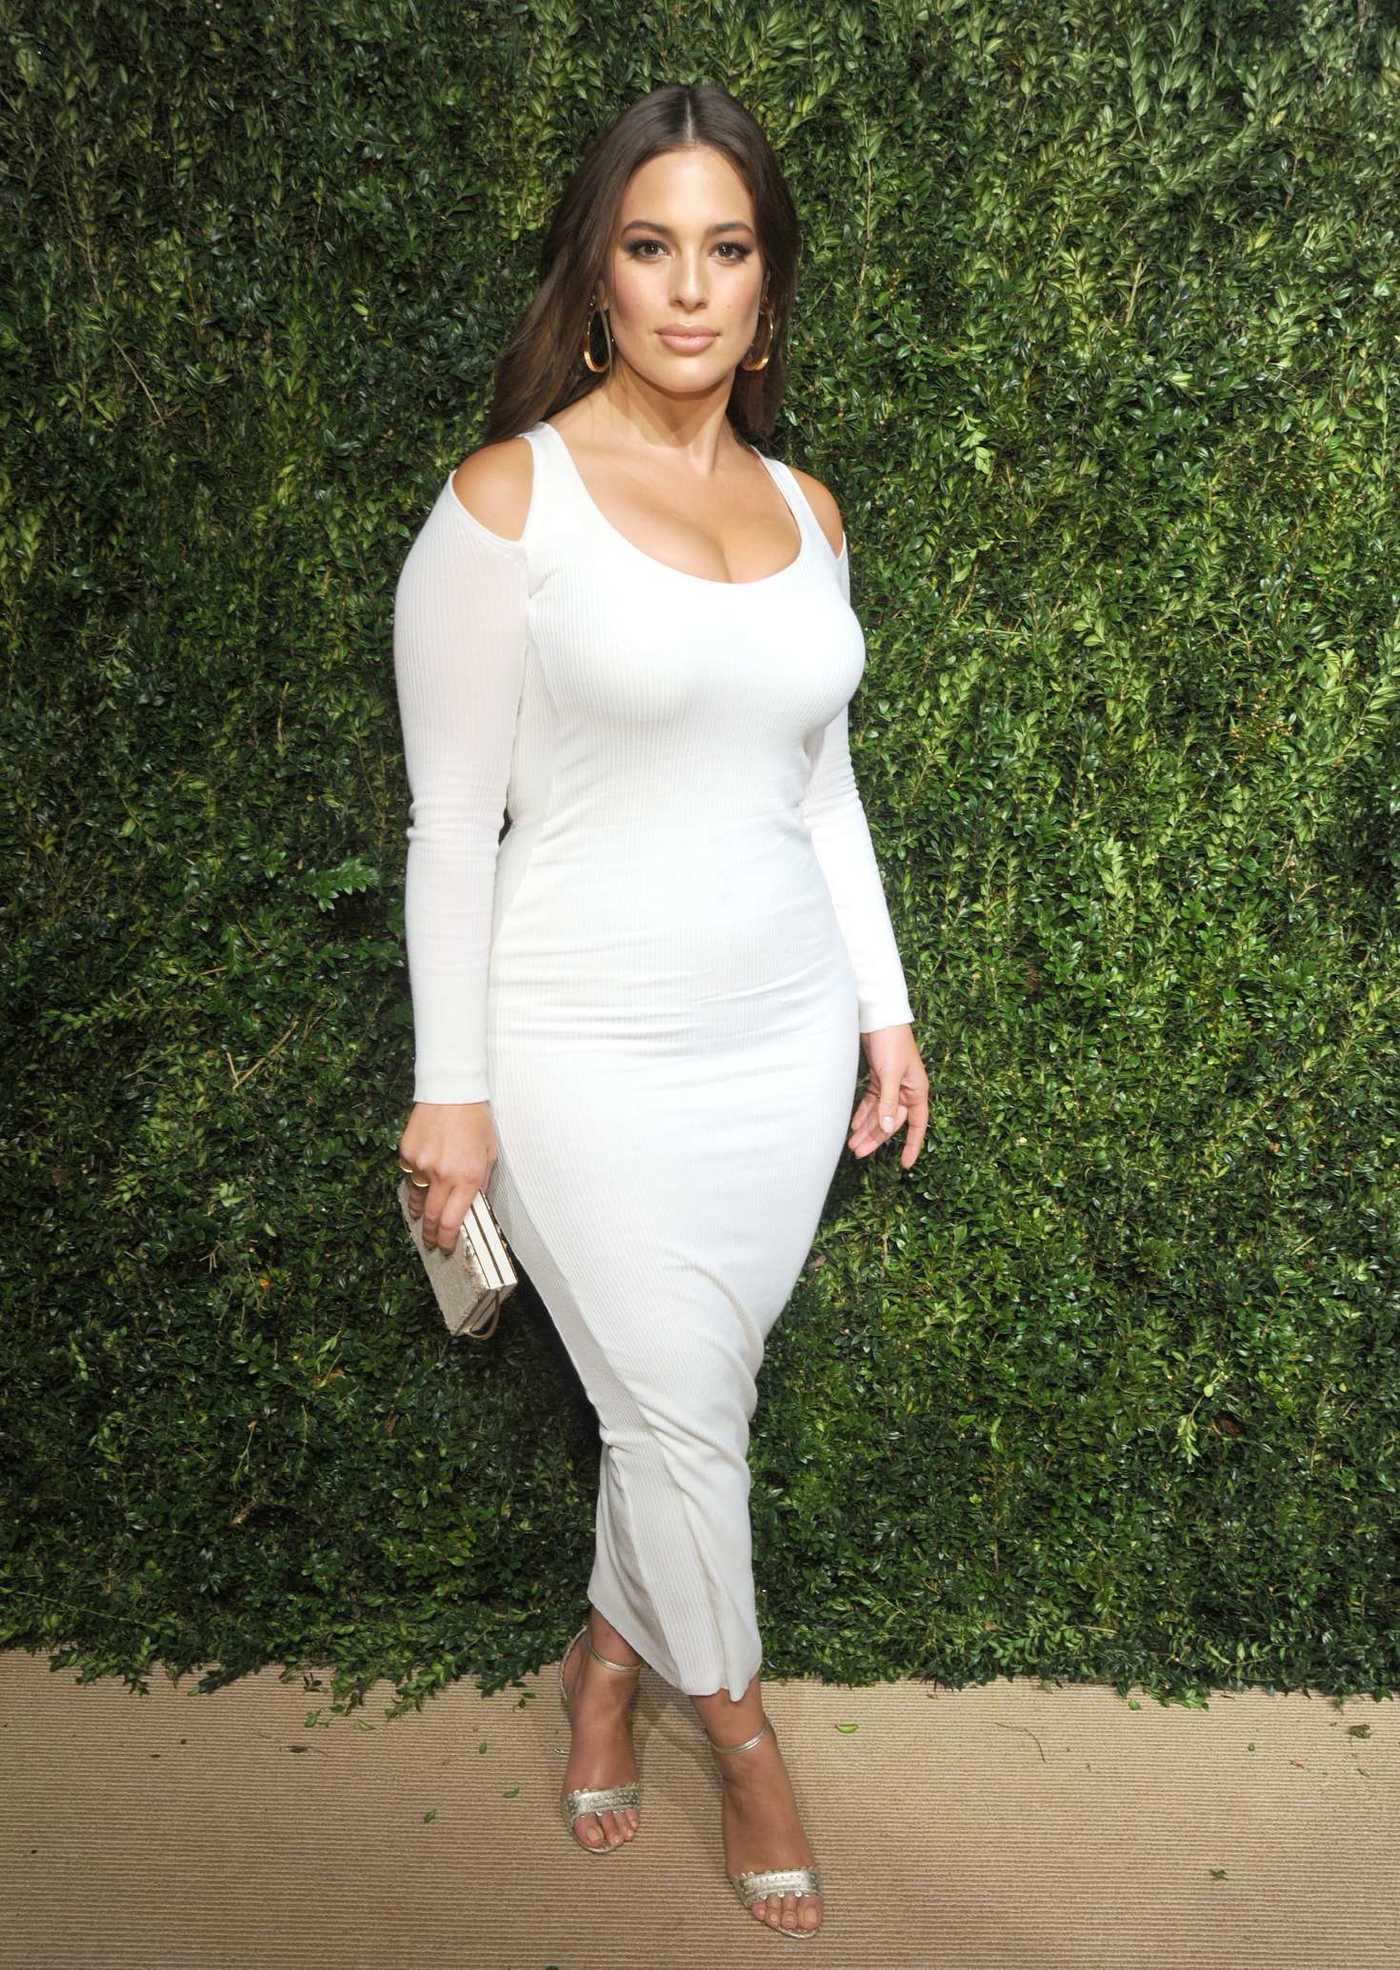 Ashley Graham at the 14th Annual CFDA Vogue Fashion Fund Awards NYC 11/06/2017